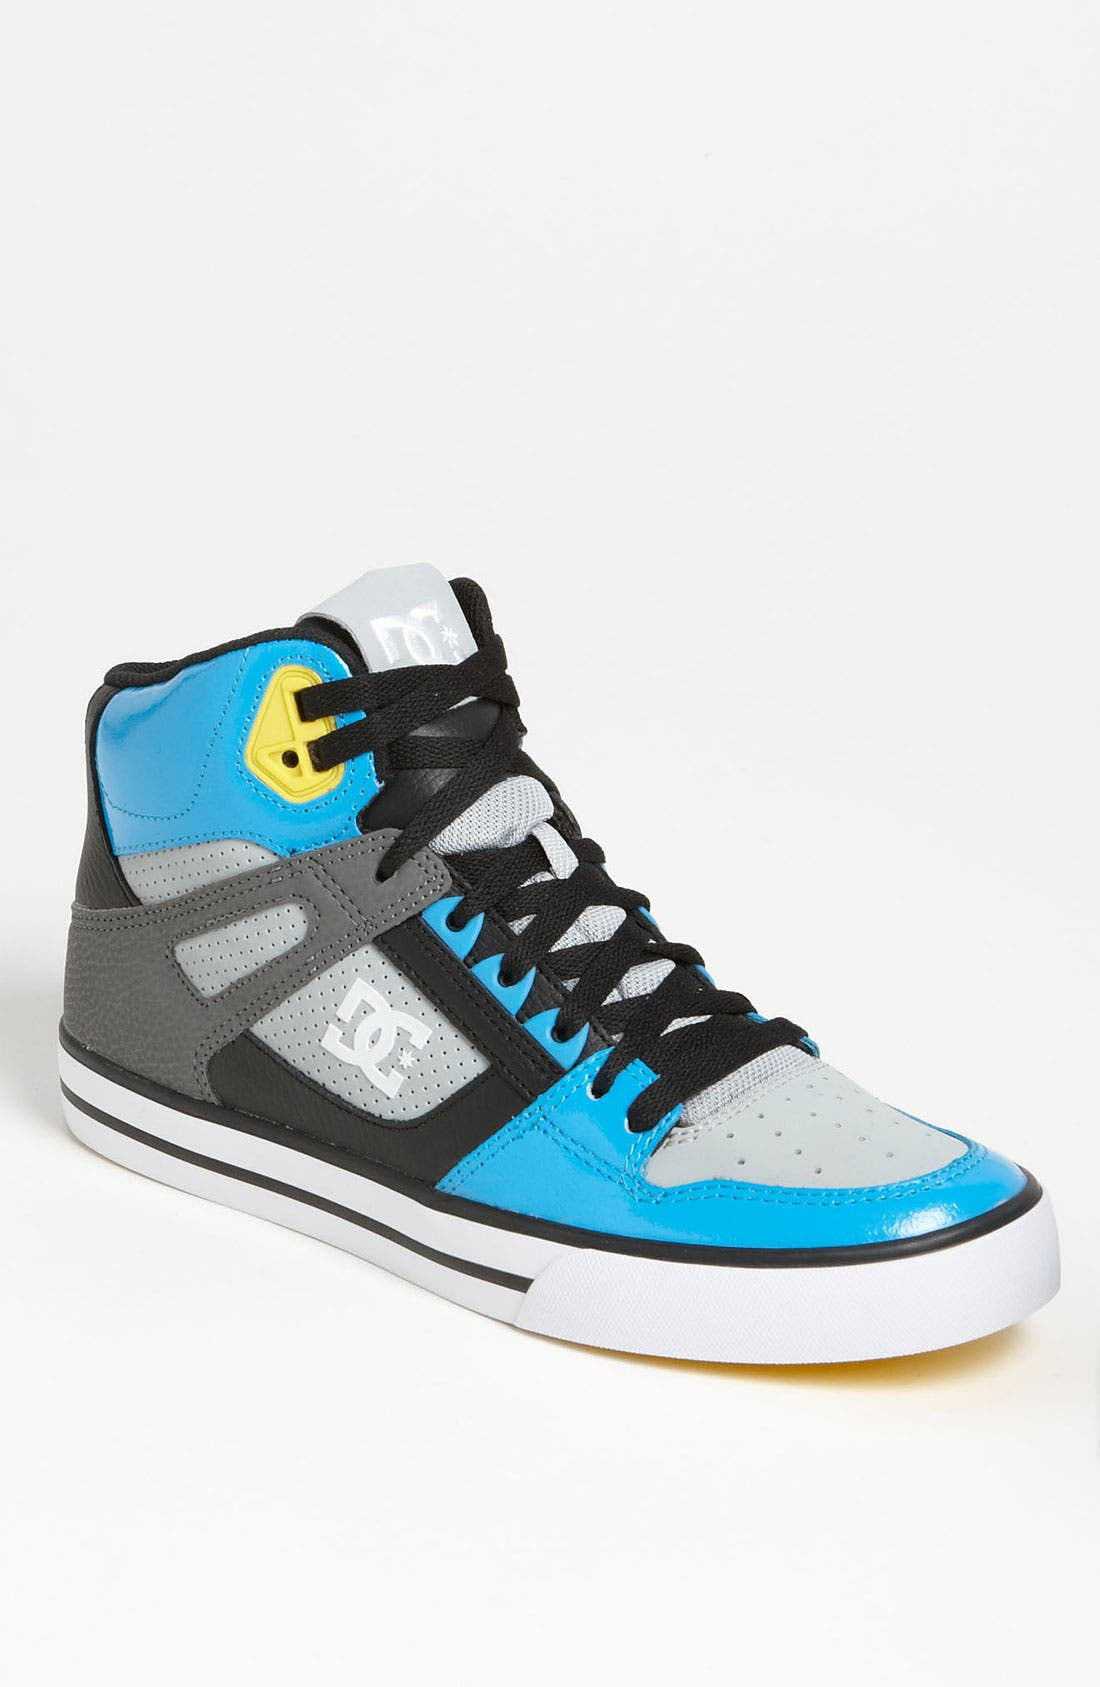 Alternate Image 1 Selected - DC Shoes 'Spartan Hi' Sneaker (Online Only)